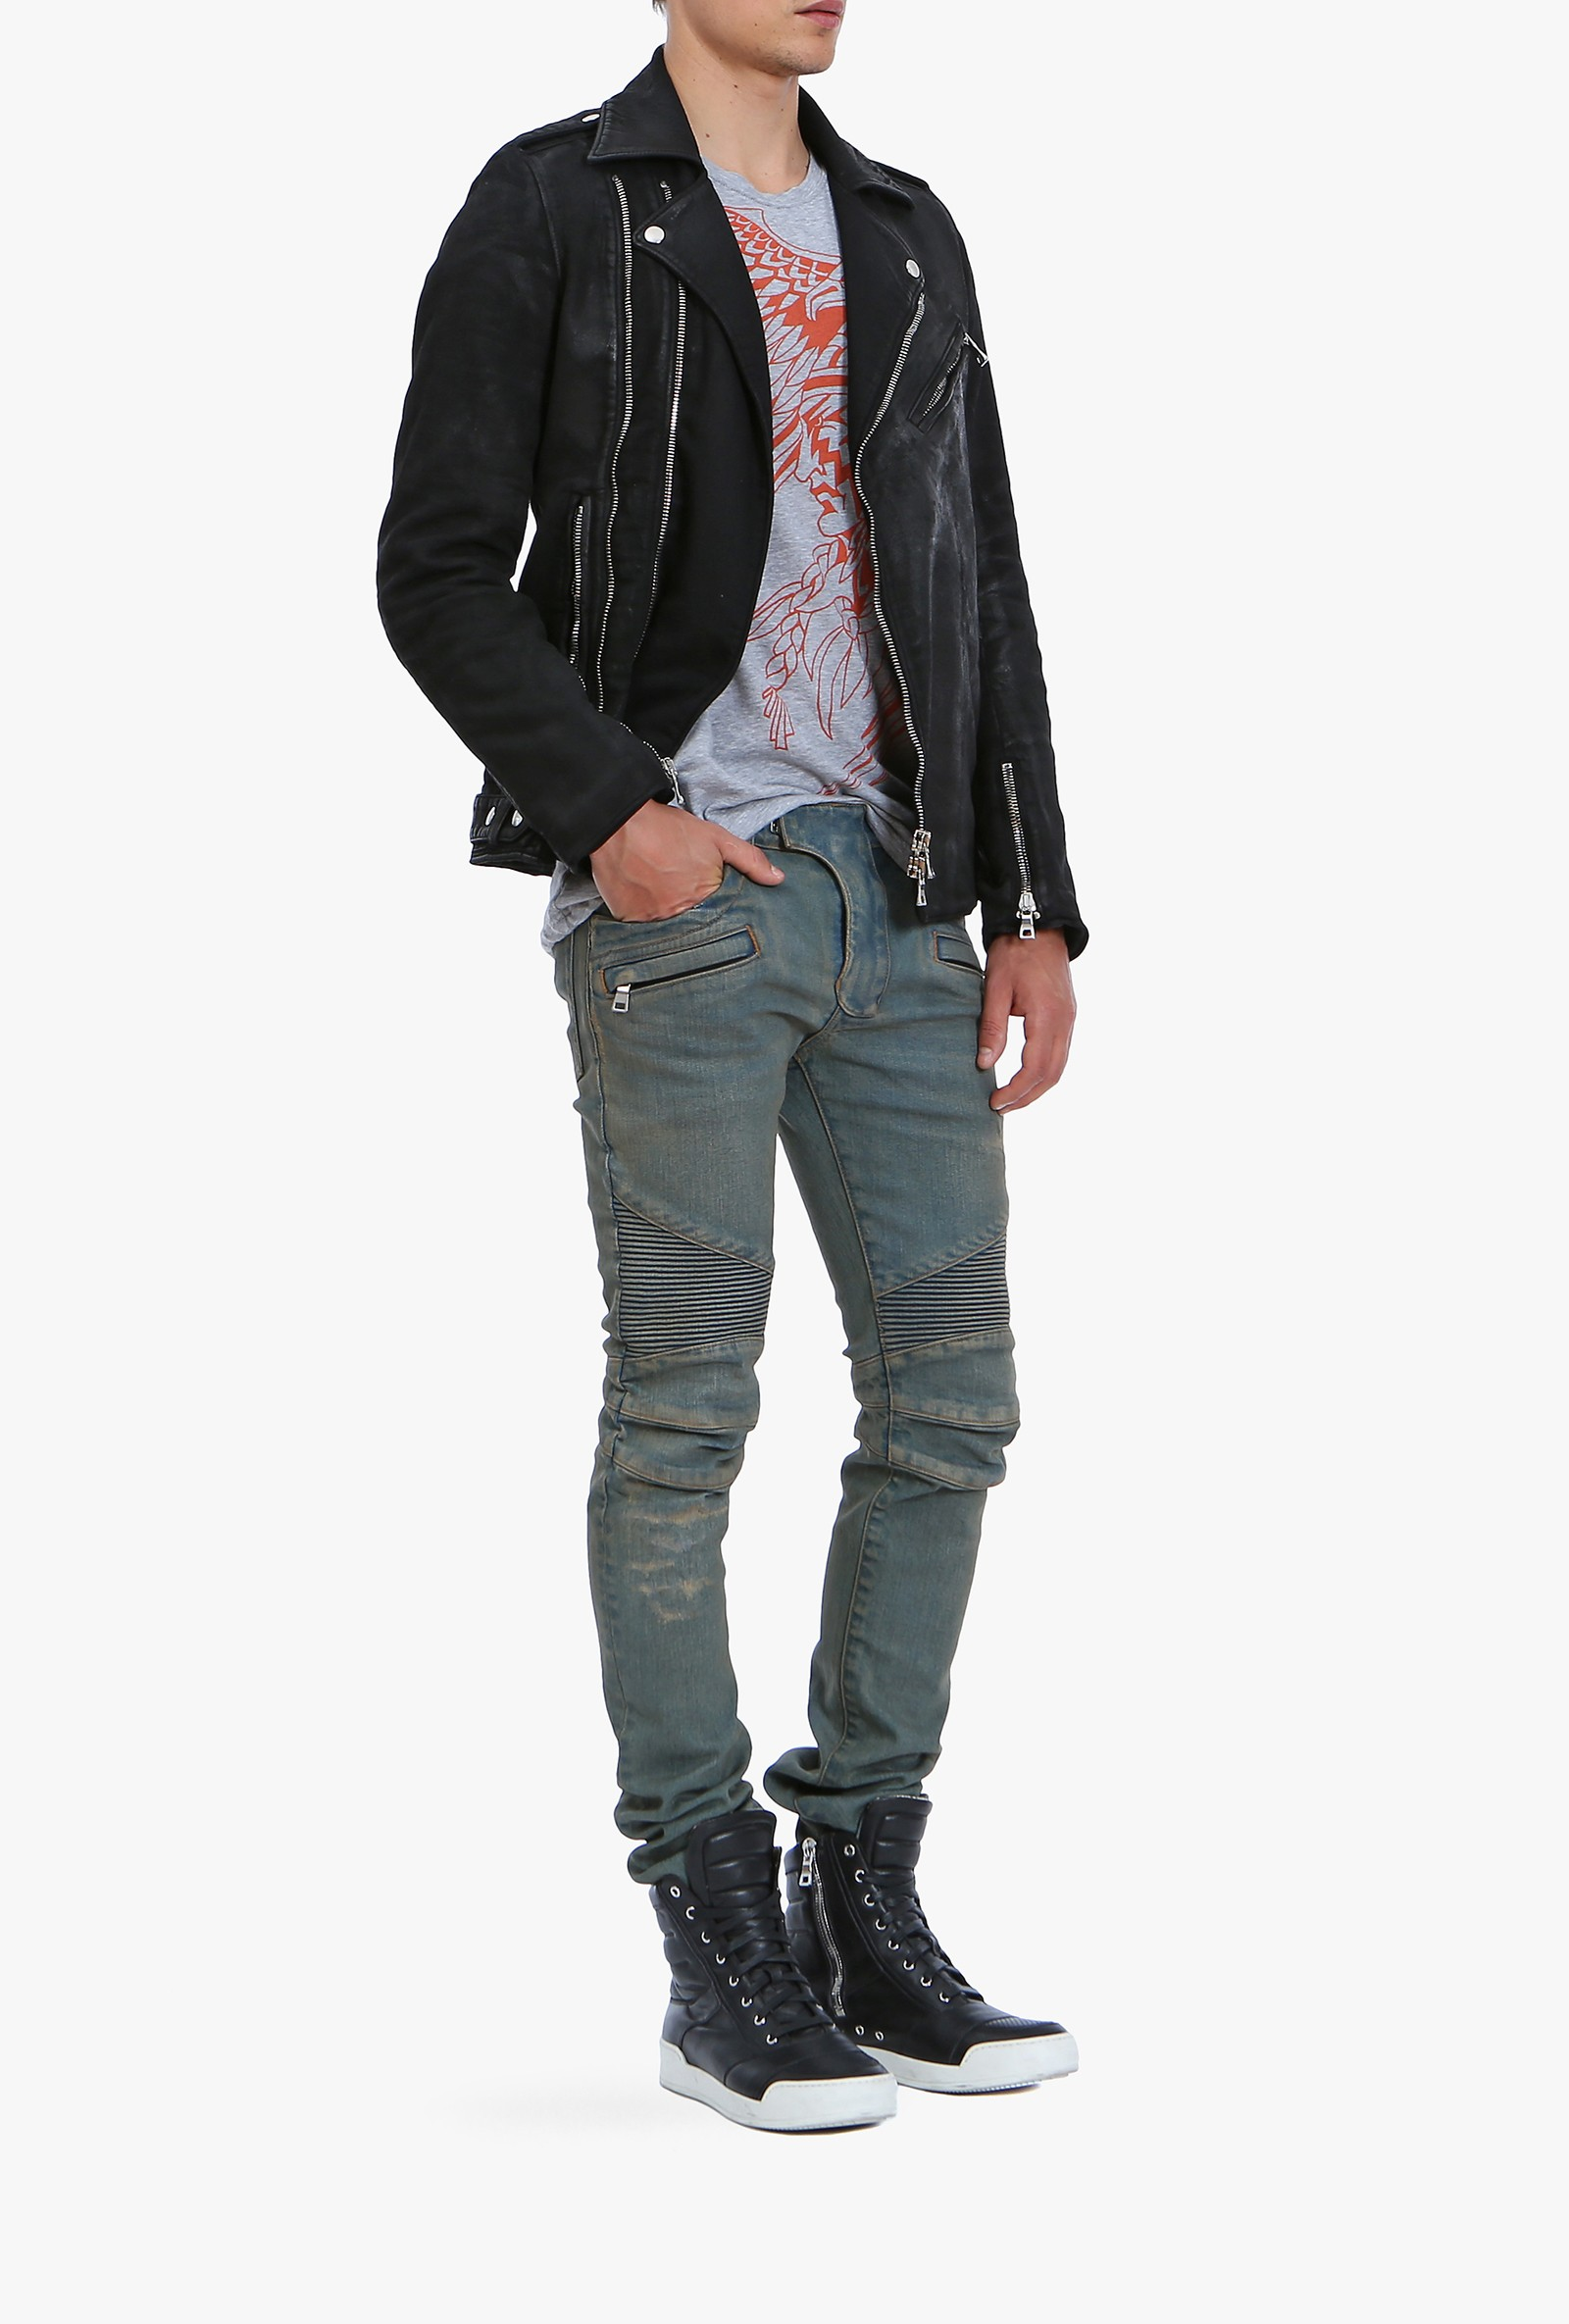 http://www.balmain.com/en_ua/men/jeans-and-trousers/slim-fit-vintage-denim-biker-jeans.html